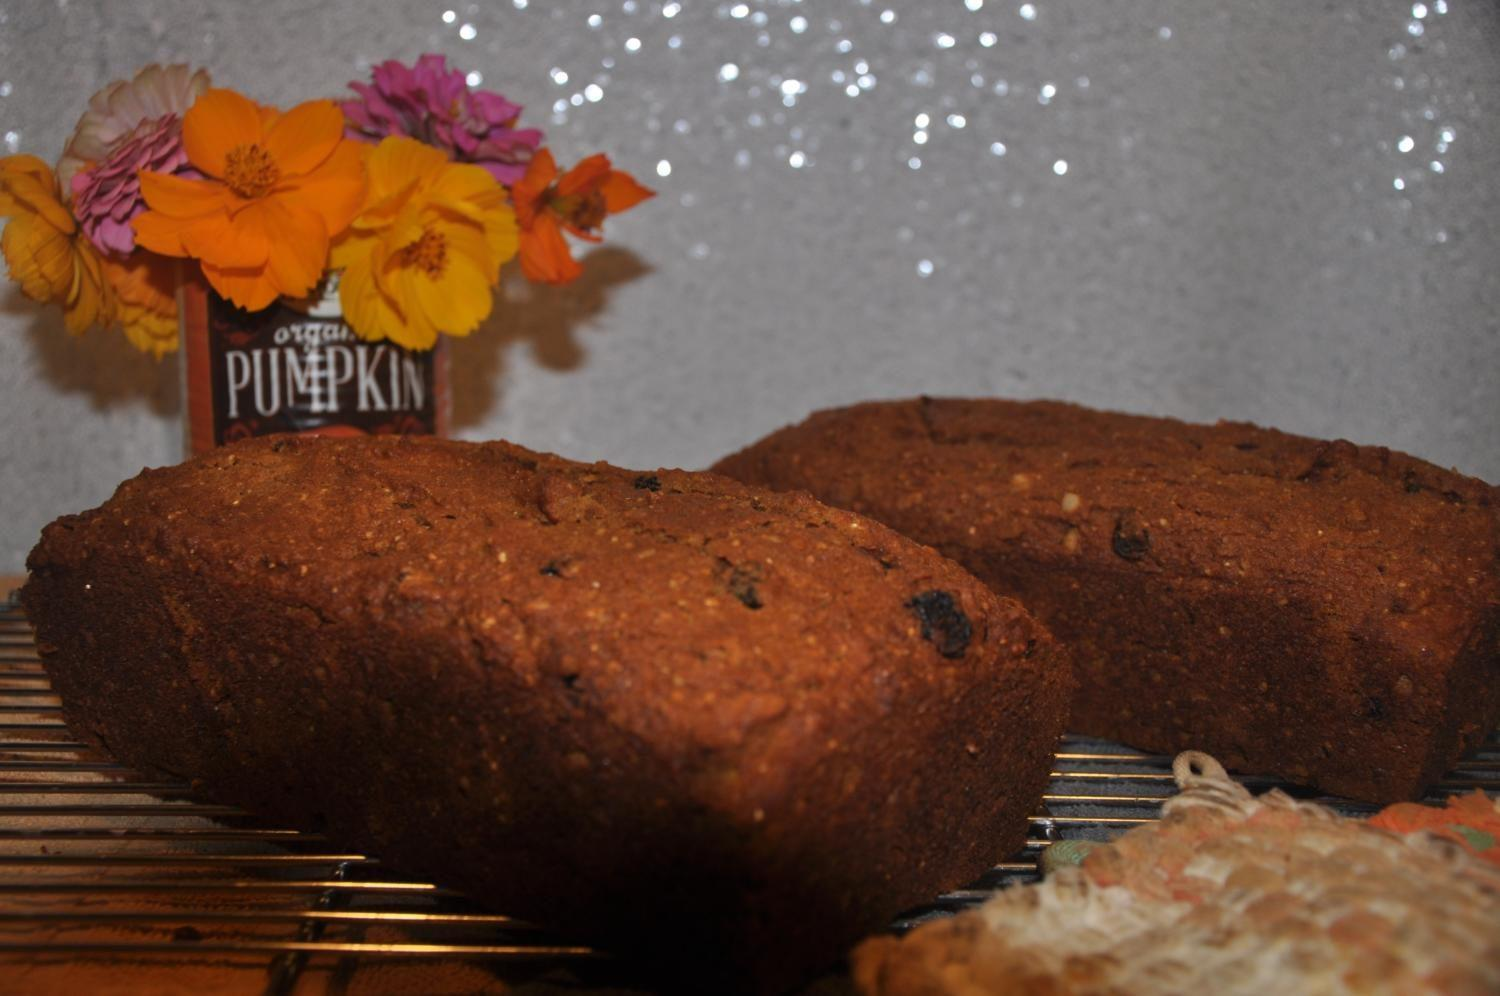 Pumpkin bread is a great go to fall treat. This recipe makes two loaves of raisin pumpkin bread for readers to enjoy.